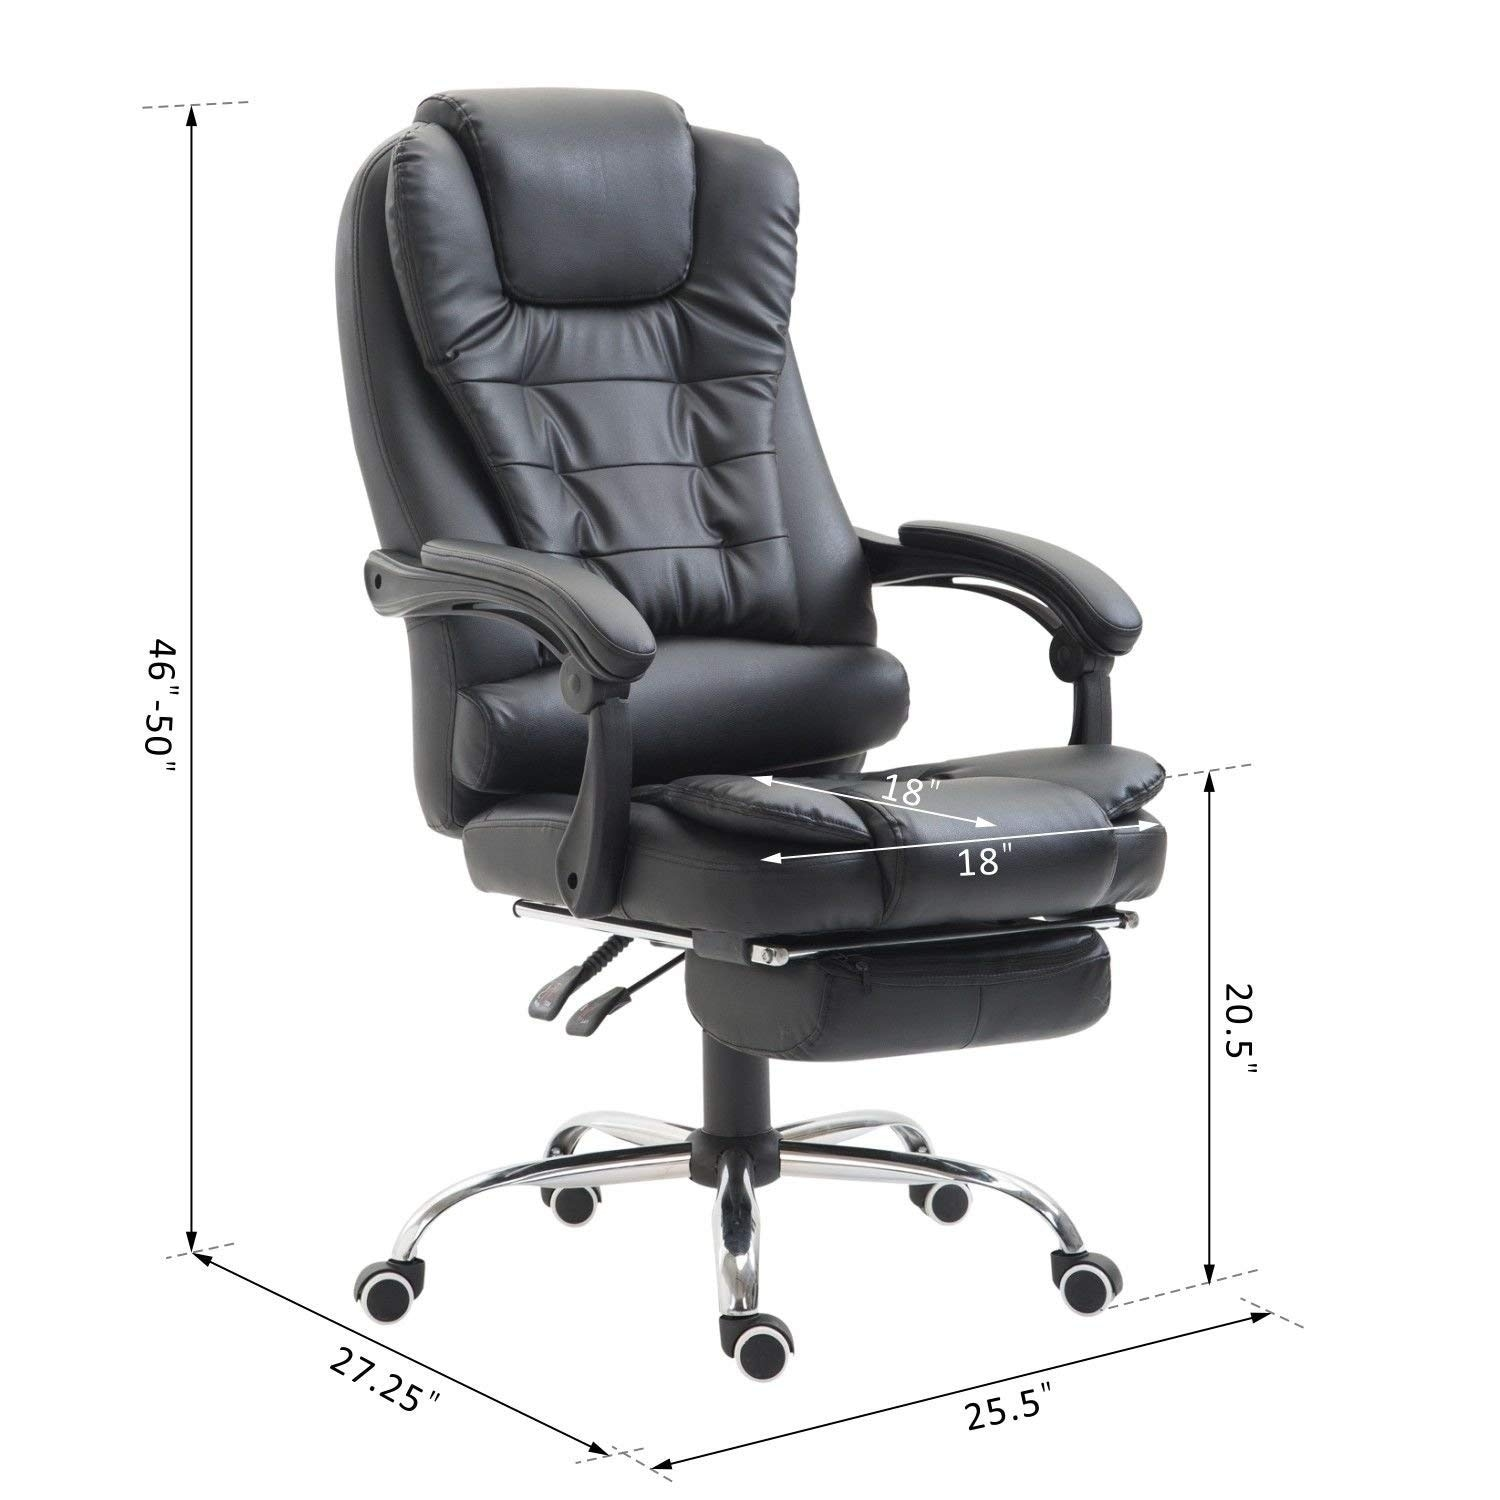 Exceptionnel Shop HomCom High Back Reclining PU Leather Executive Home Office Chair With  Retractable Footrest   Black   On Sale   Free Shipping Today   Overstock    ...